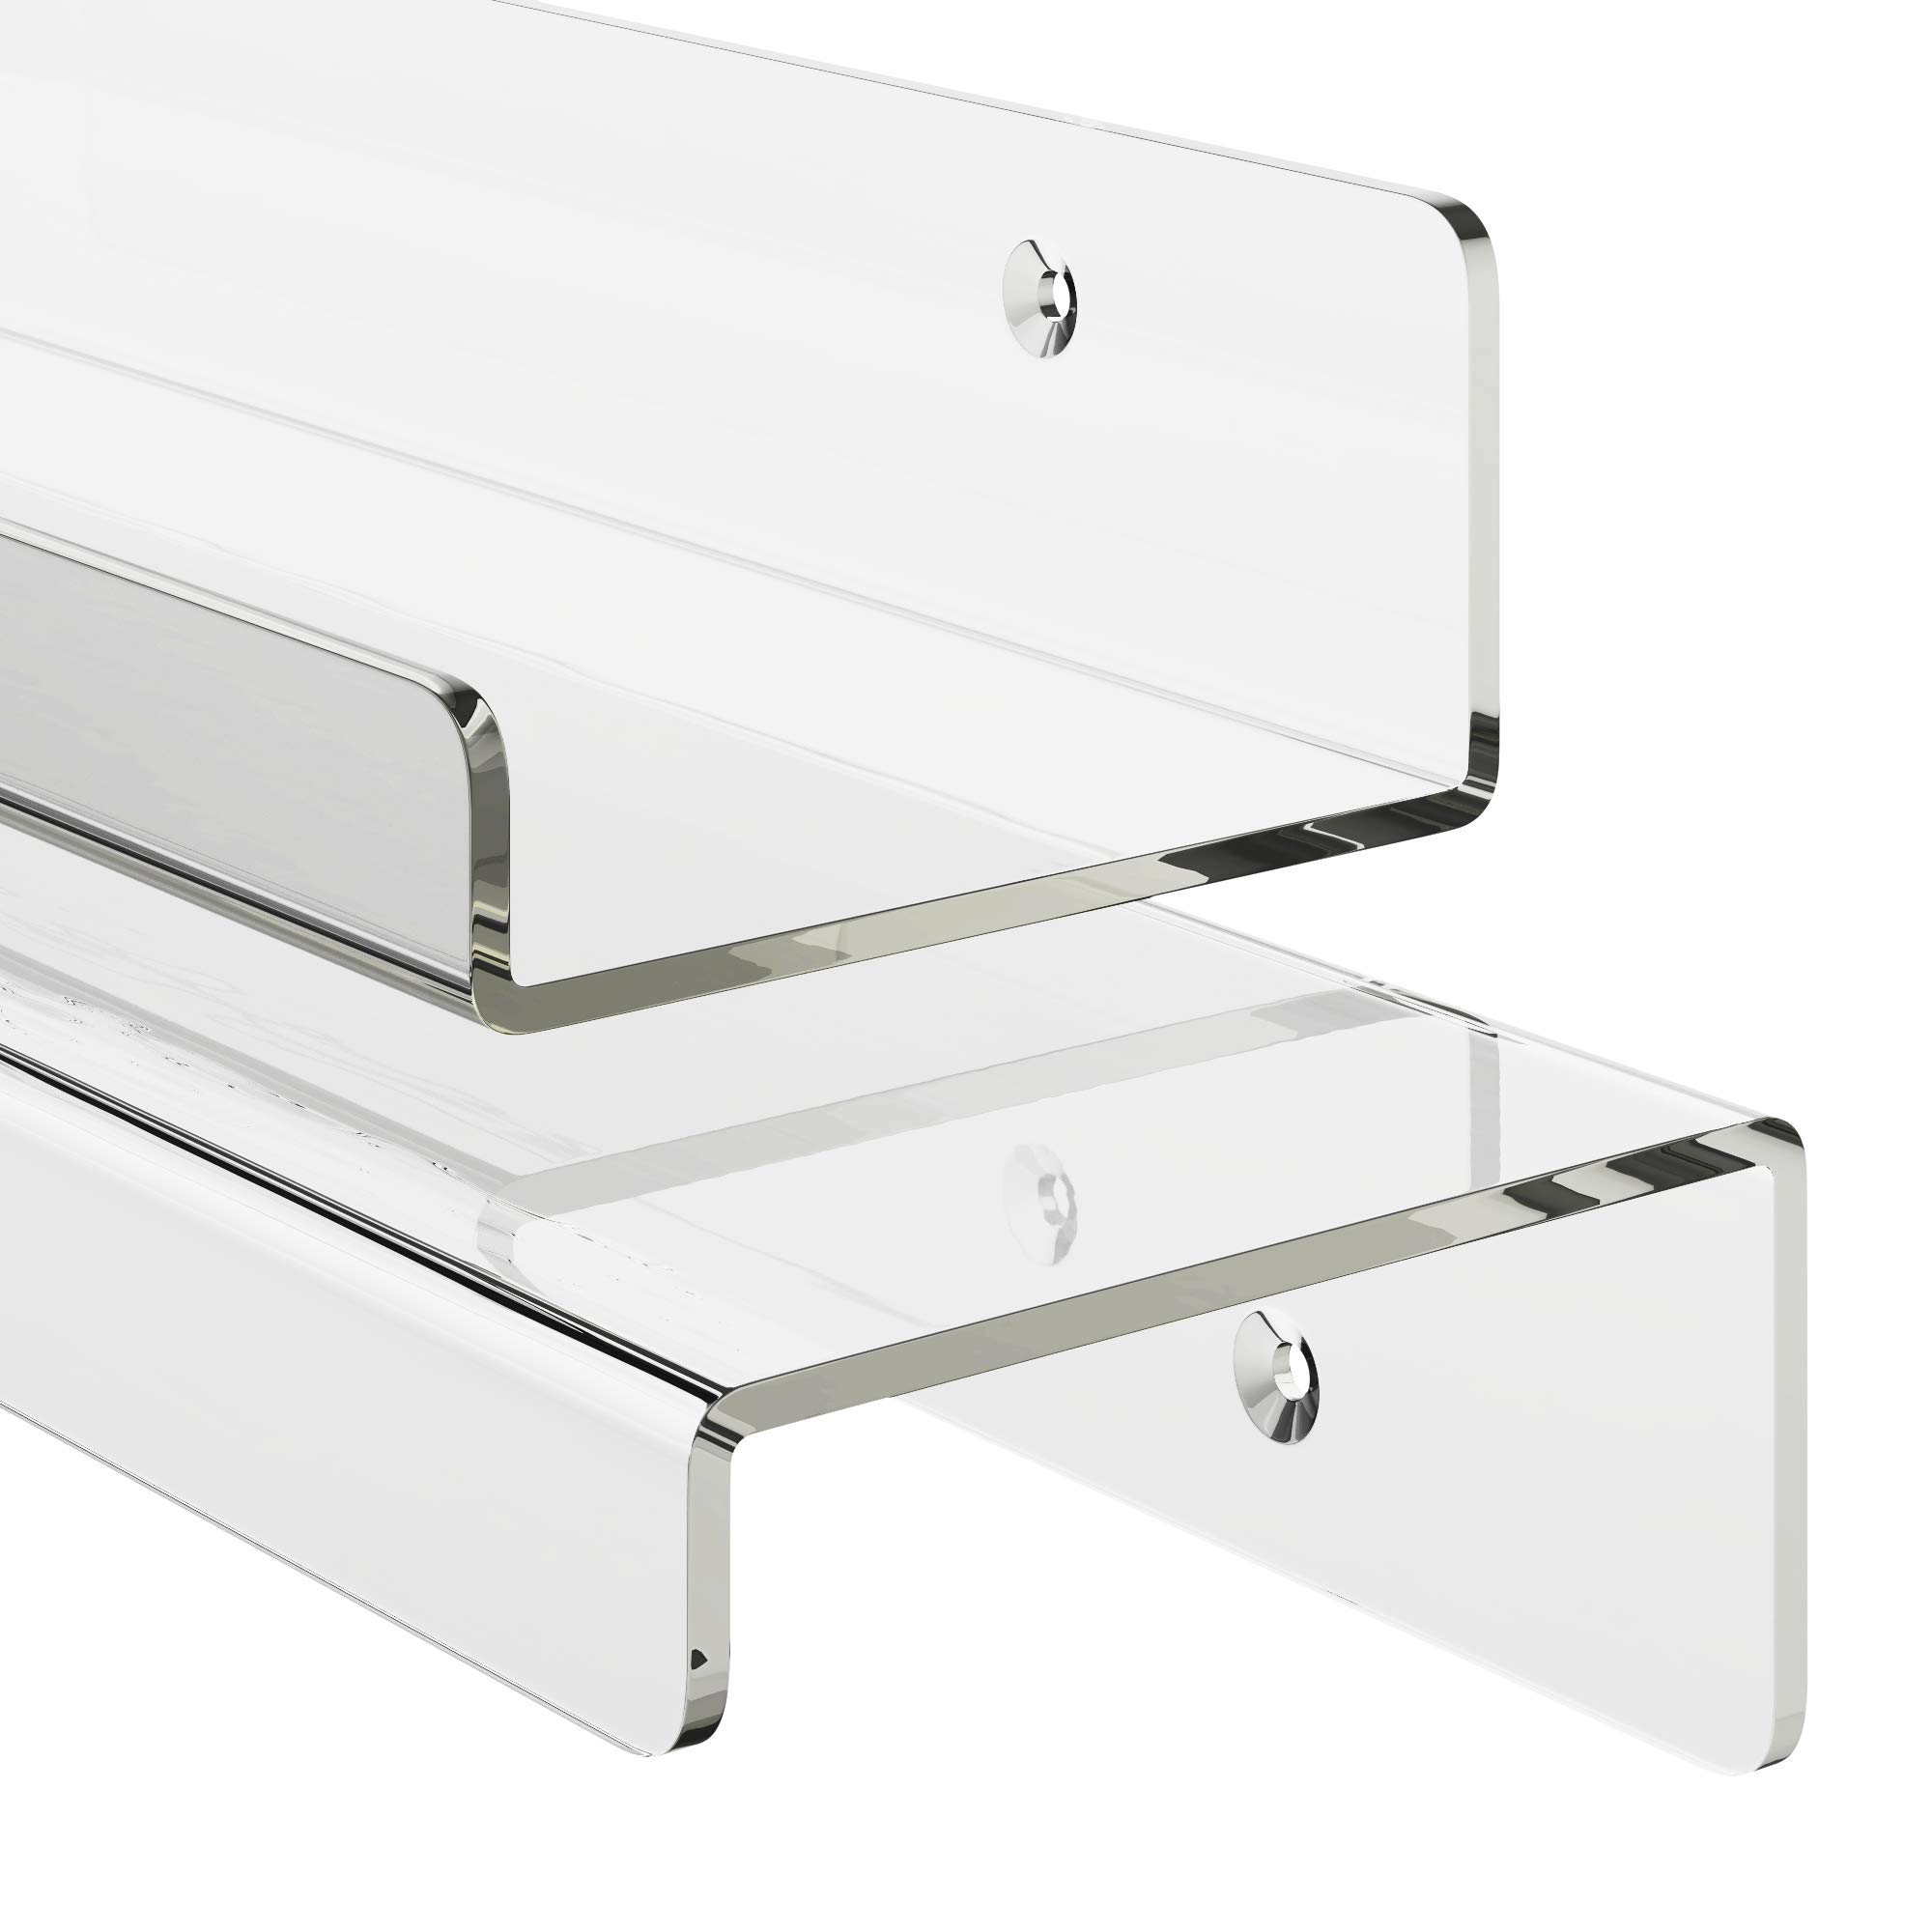 Unum Set of 2 Acrylic 24'' Invisible Floating Shelves for Wall; Clear Hanging Wall Display Shelf Ledges/Ledge - Vinyl LP Record Display Shelves - 24'' Long x 4'' Deep (2-Pack)